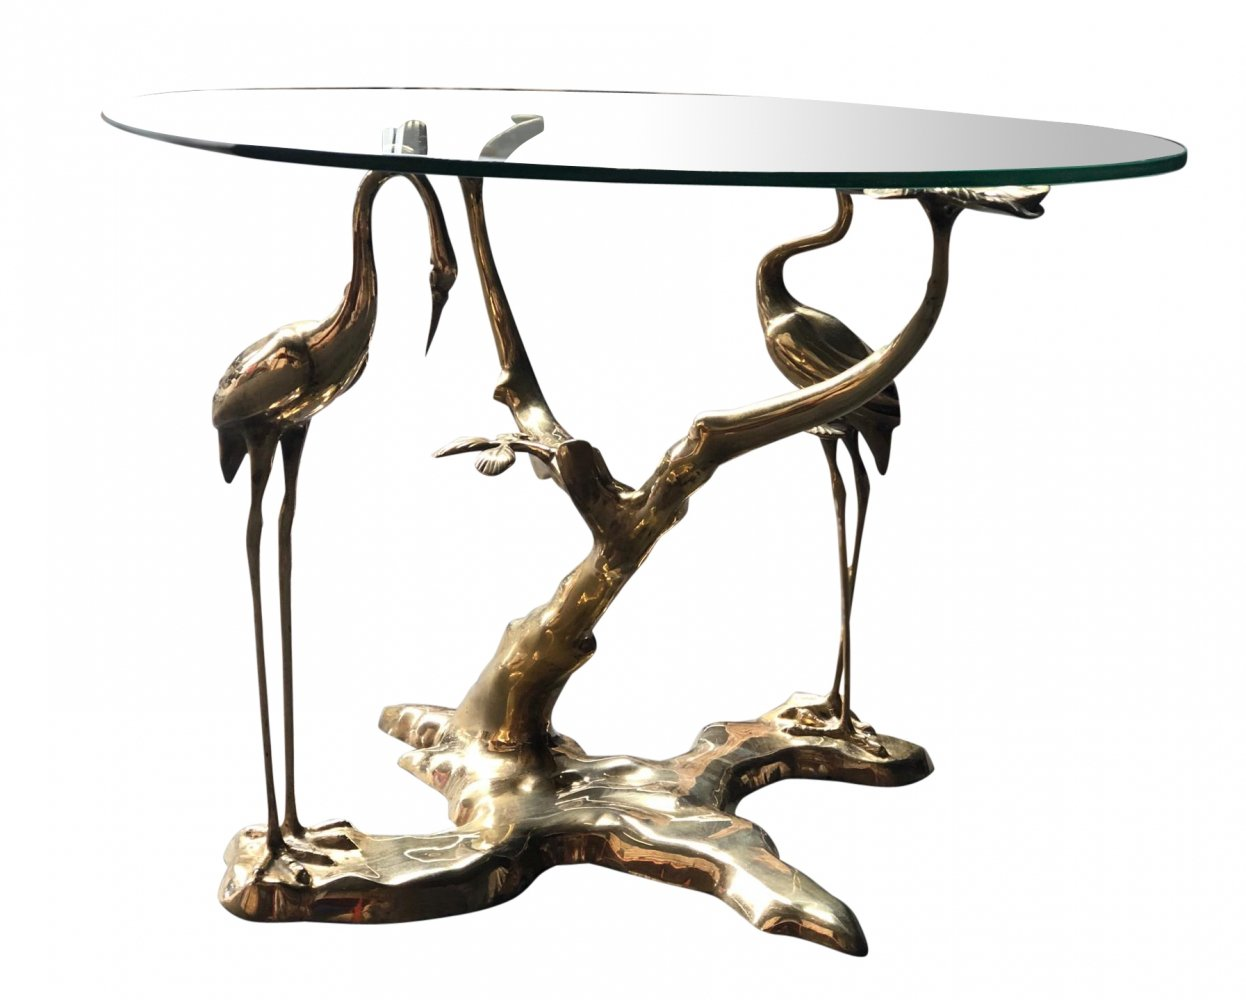 Bronze crane bird coffee table by Willy Daro, 1970s